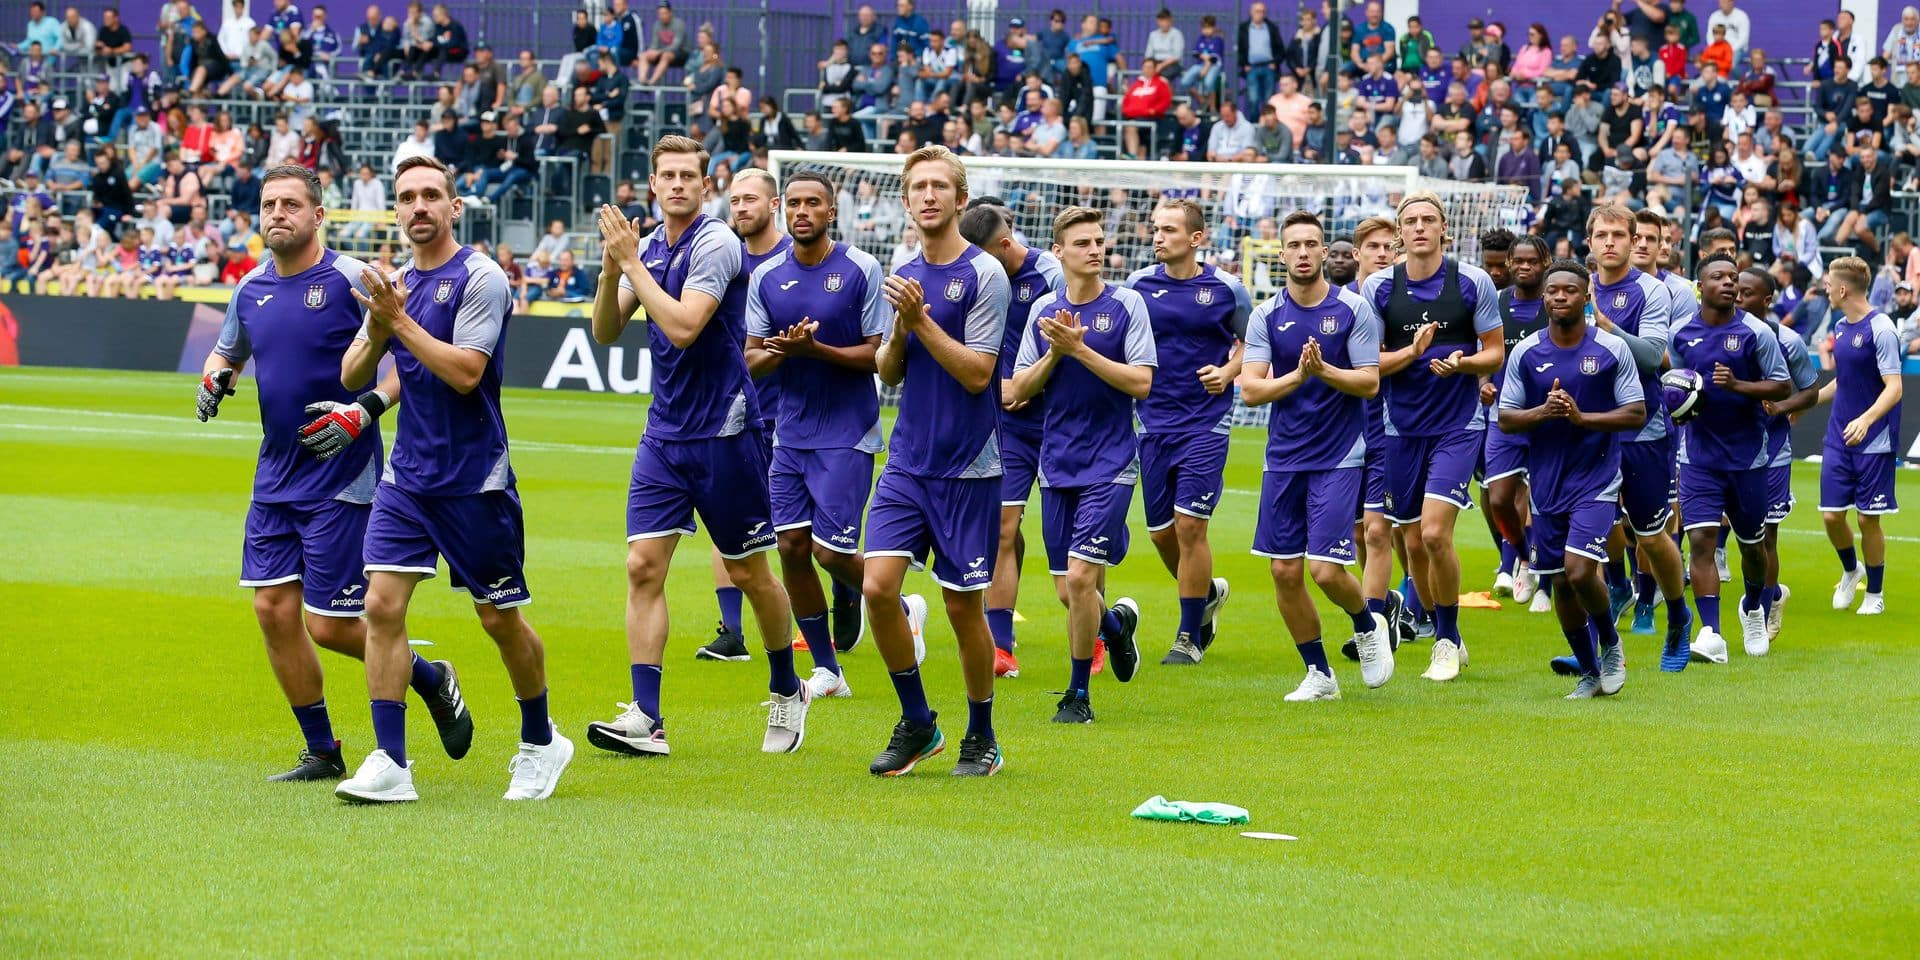 Anderlecht's goalkeeper Frank Boeckx and Anderlecht's Sven Kums pictured during the fan day of soccer team RSC Anderlecht, Sunday 14 July 2019 in Anderlecht, Brussels. BELGA PHOTO NICOLAS MAETERLINCK